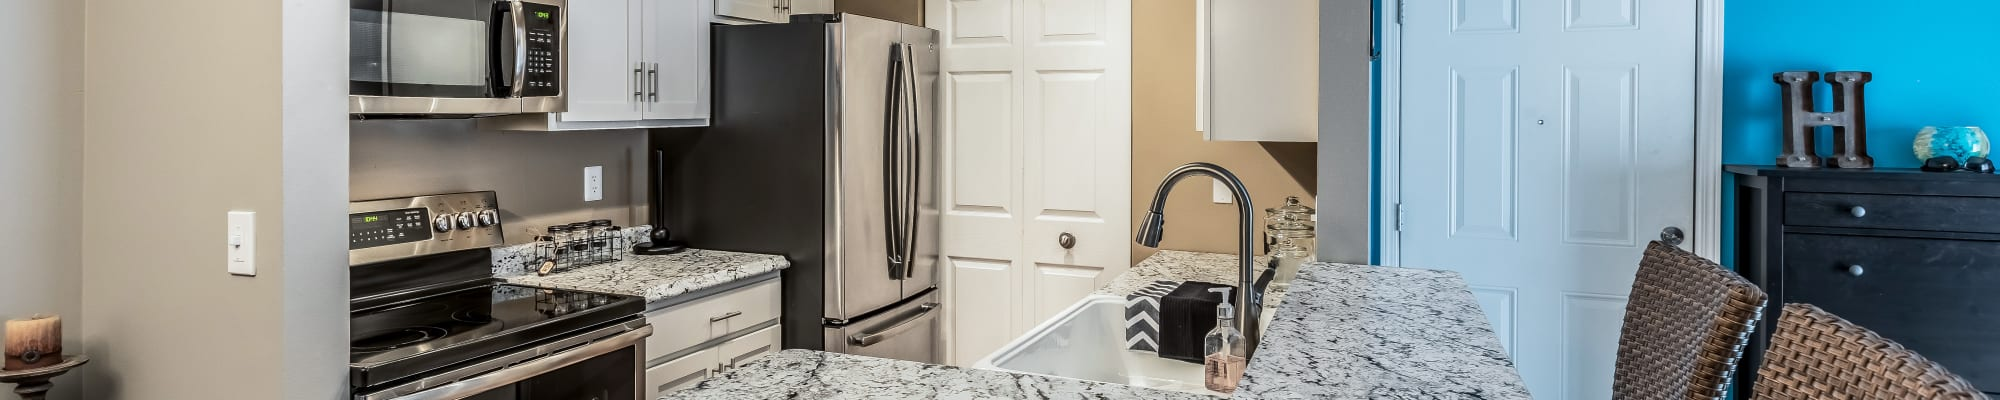 Contact Us at Waters Edge Apartments in Lansing, Michigan